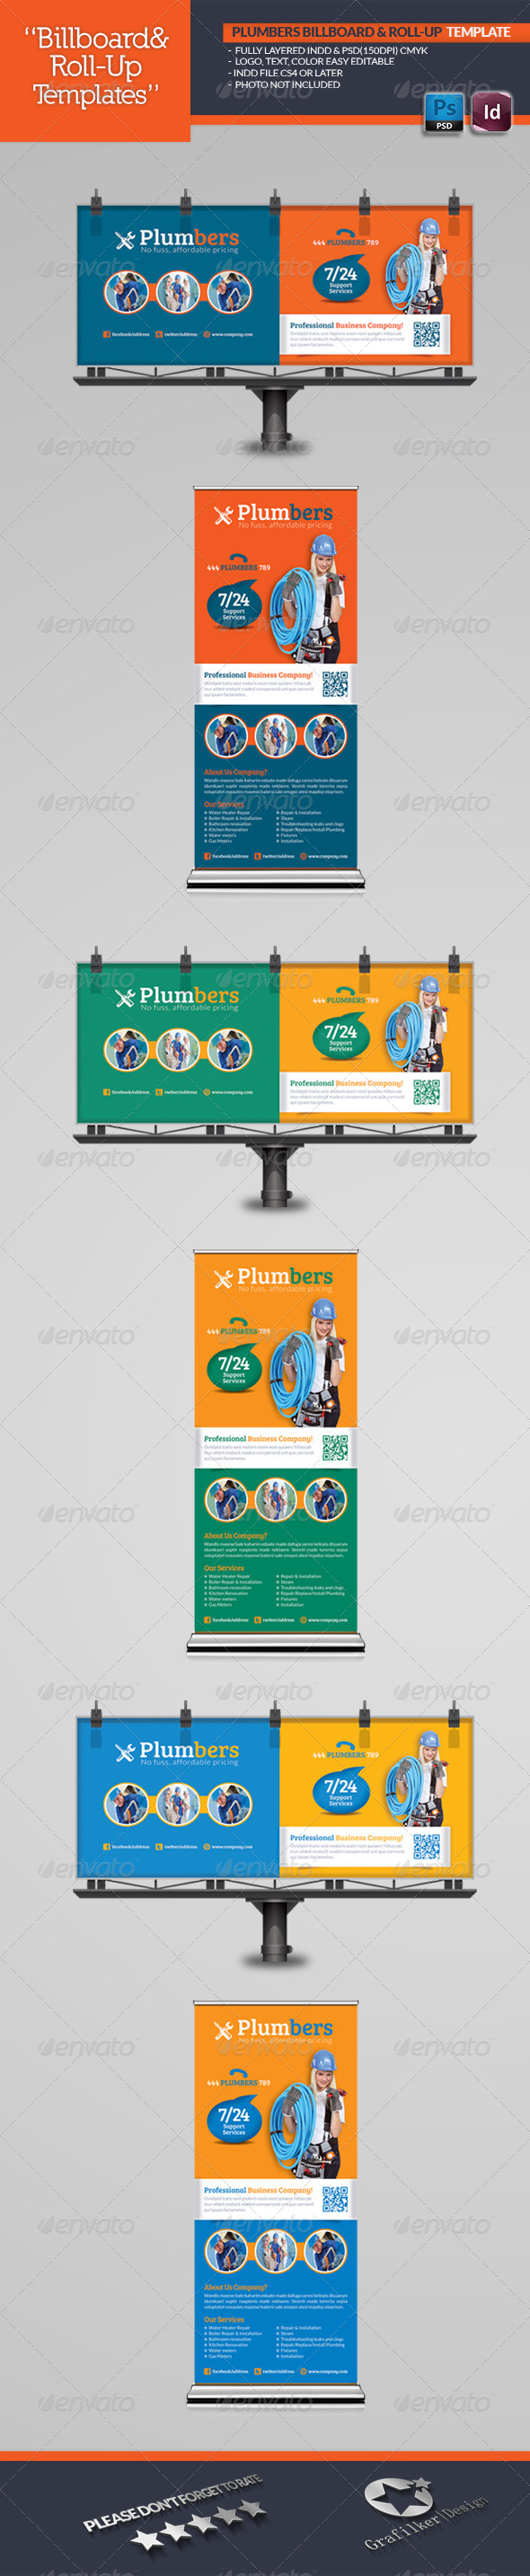 GraphicRiver Plumbers Billboard & Roll-Up Template 5153758